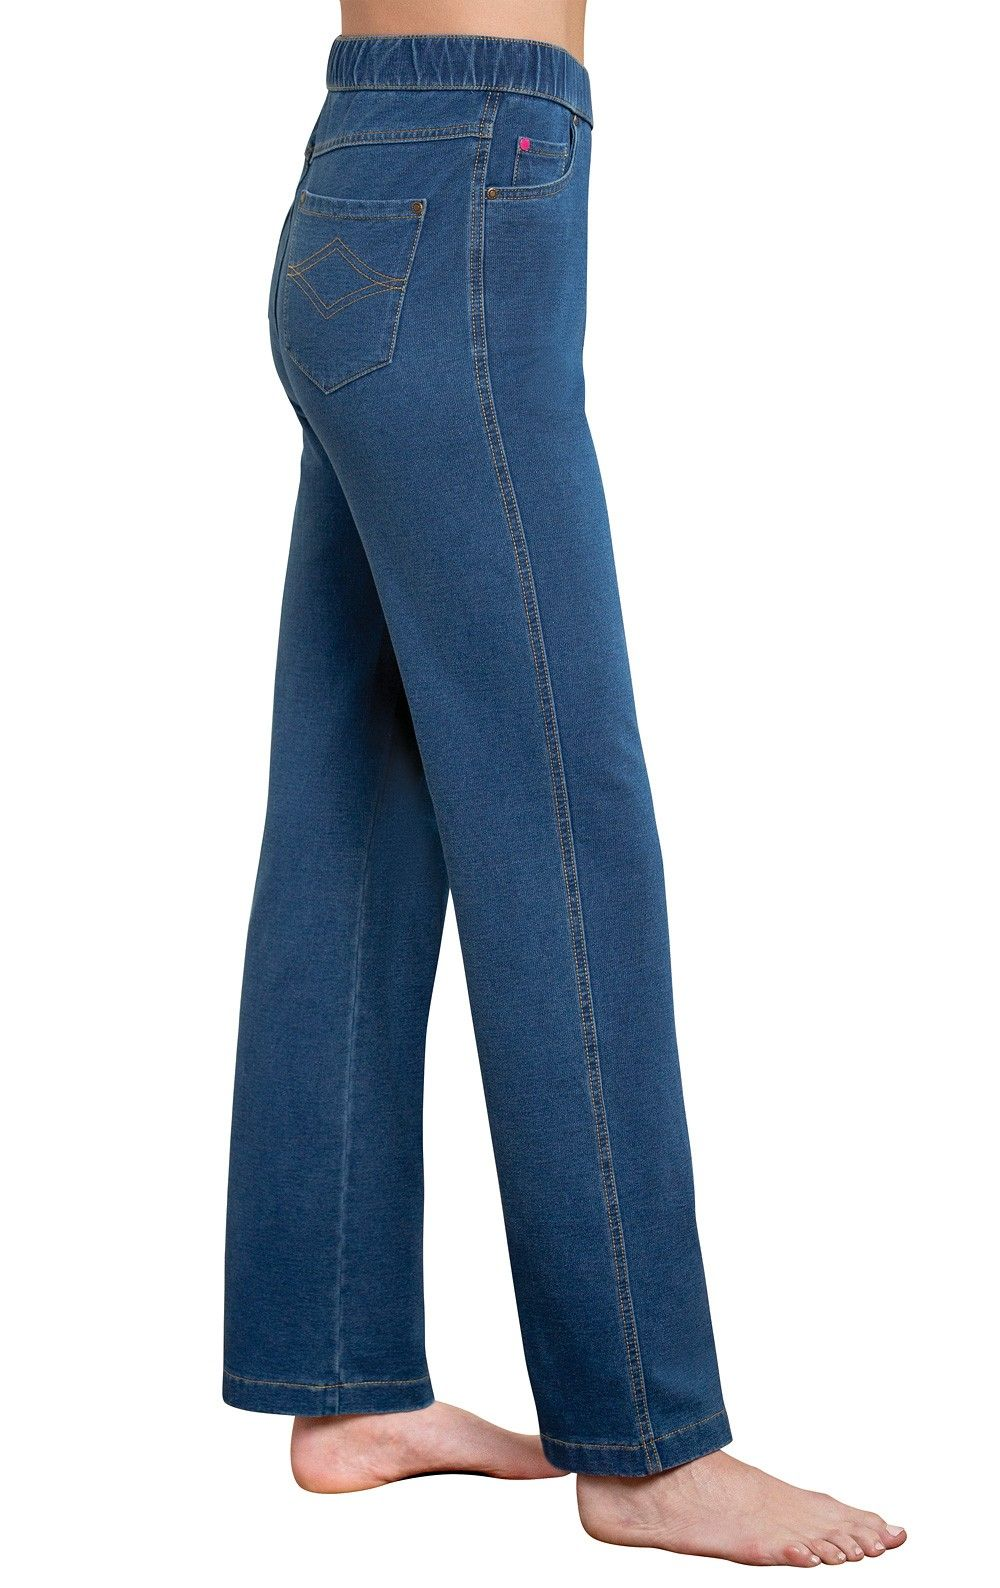 58536b9d1f862 PajamaJeans® - High-Waist Pacific - $49.99 A truly ageless style that  highlights women's natural waistline, our high-waist PajamaJeans rank high  on two ...